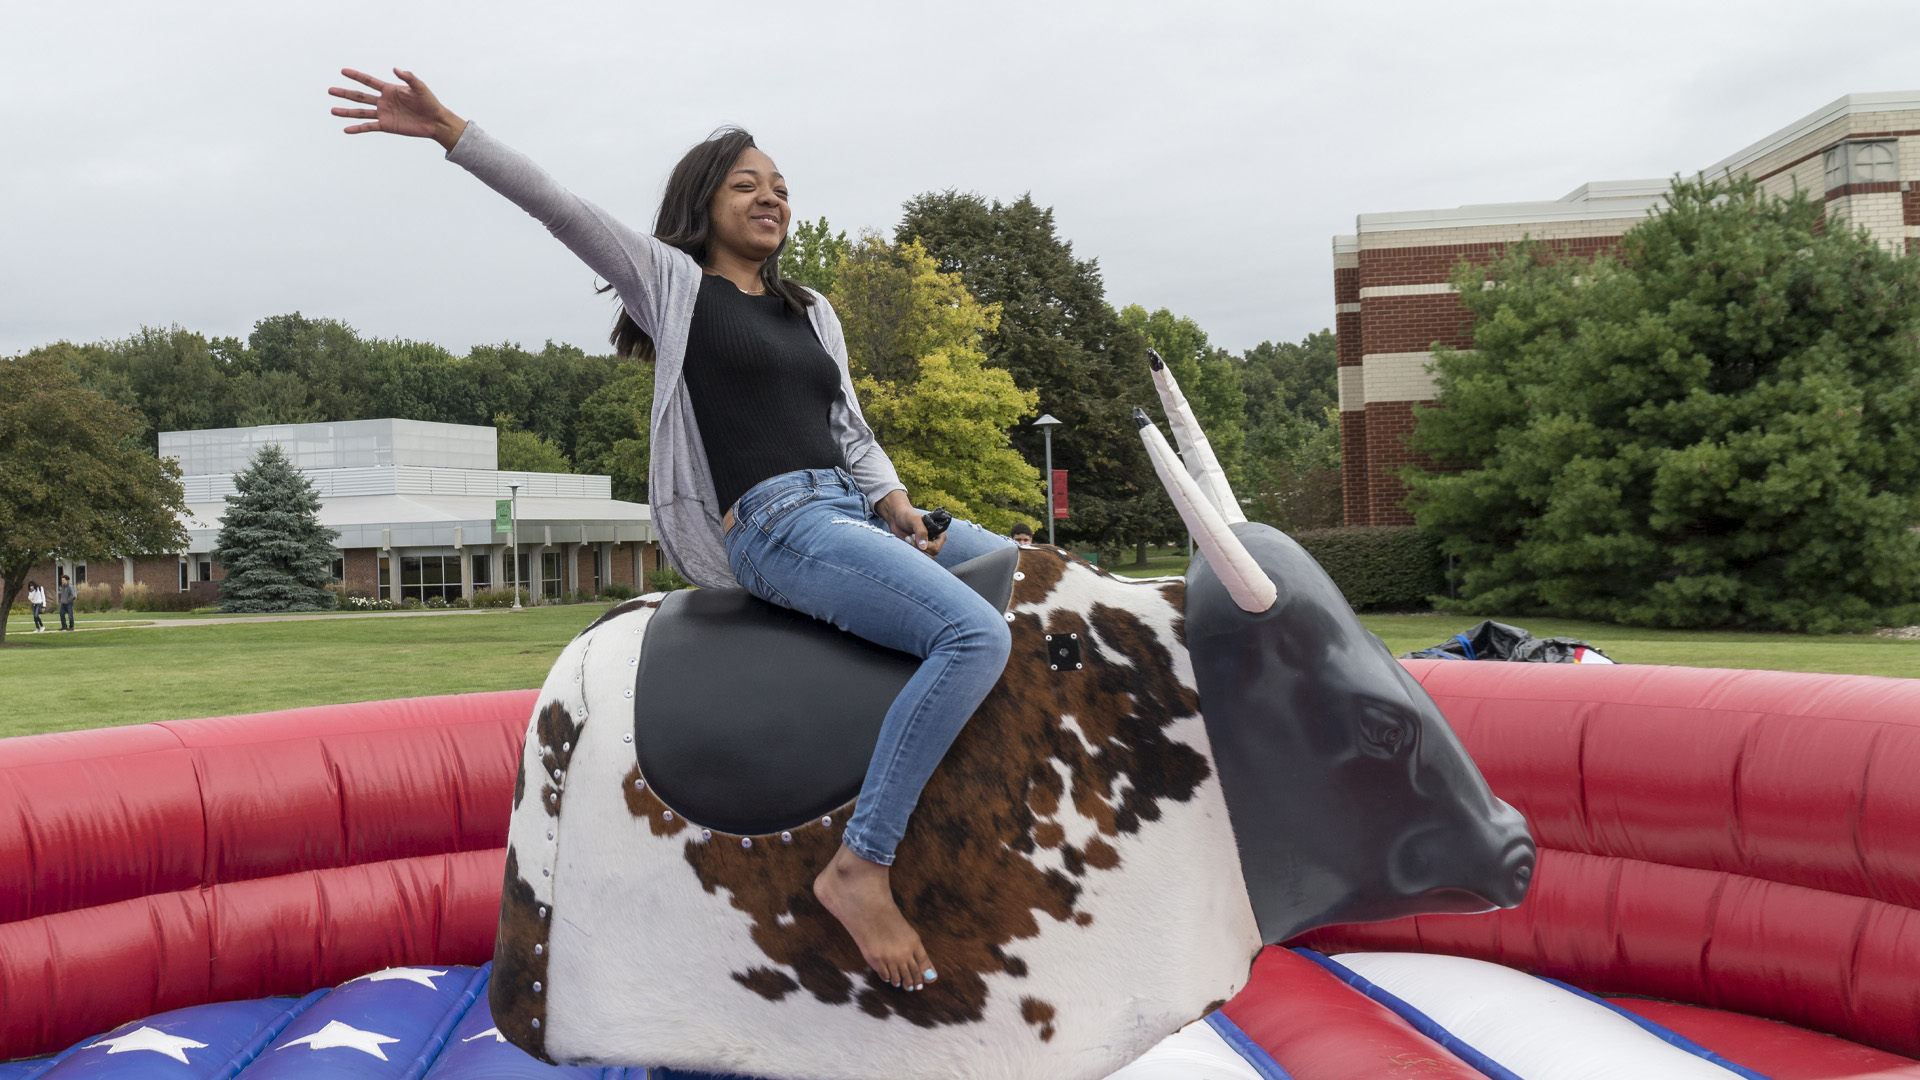 Student riding a mechanical bull during campus bash